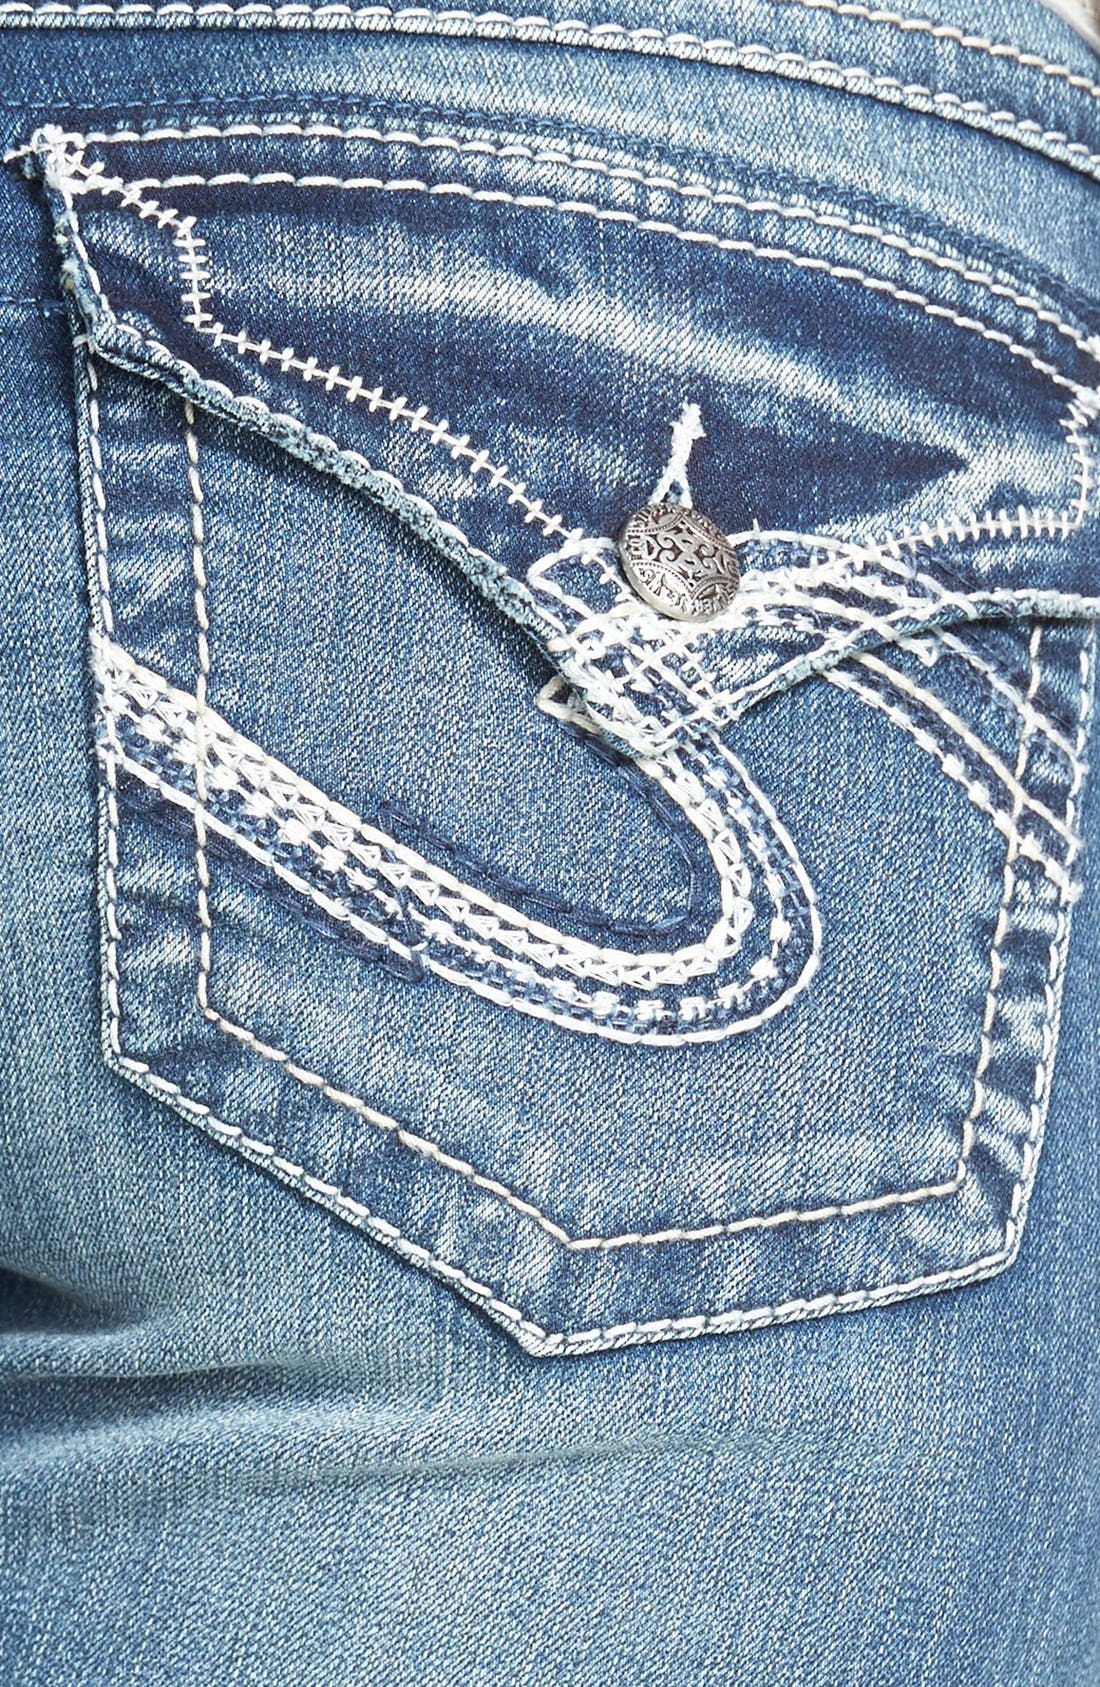 Alternate Image 3  - Silver Jeans Co. 'Tuesday'  Flap Pocket Bootcut Jeans (Indigo)